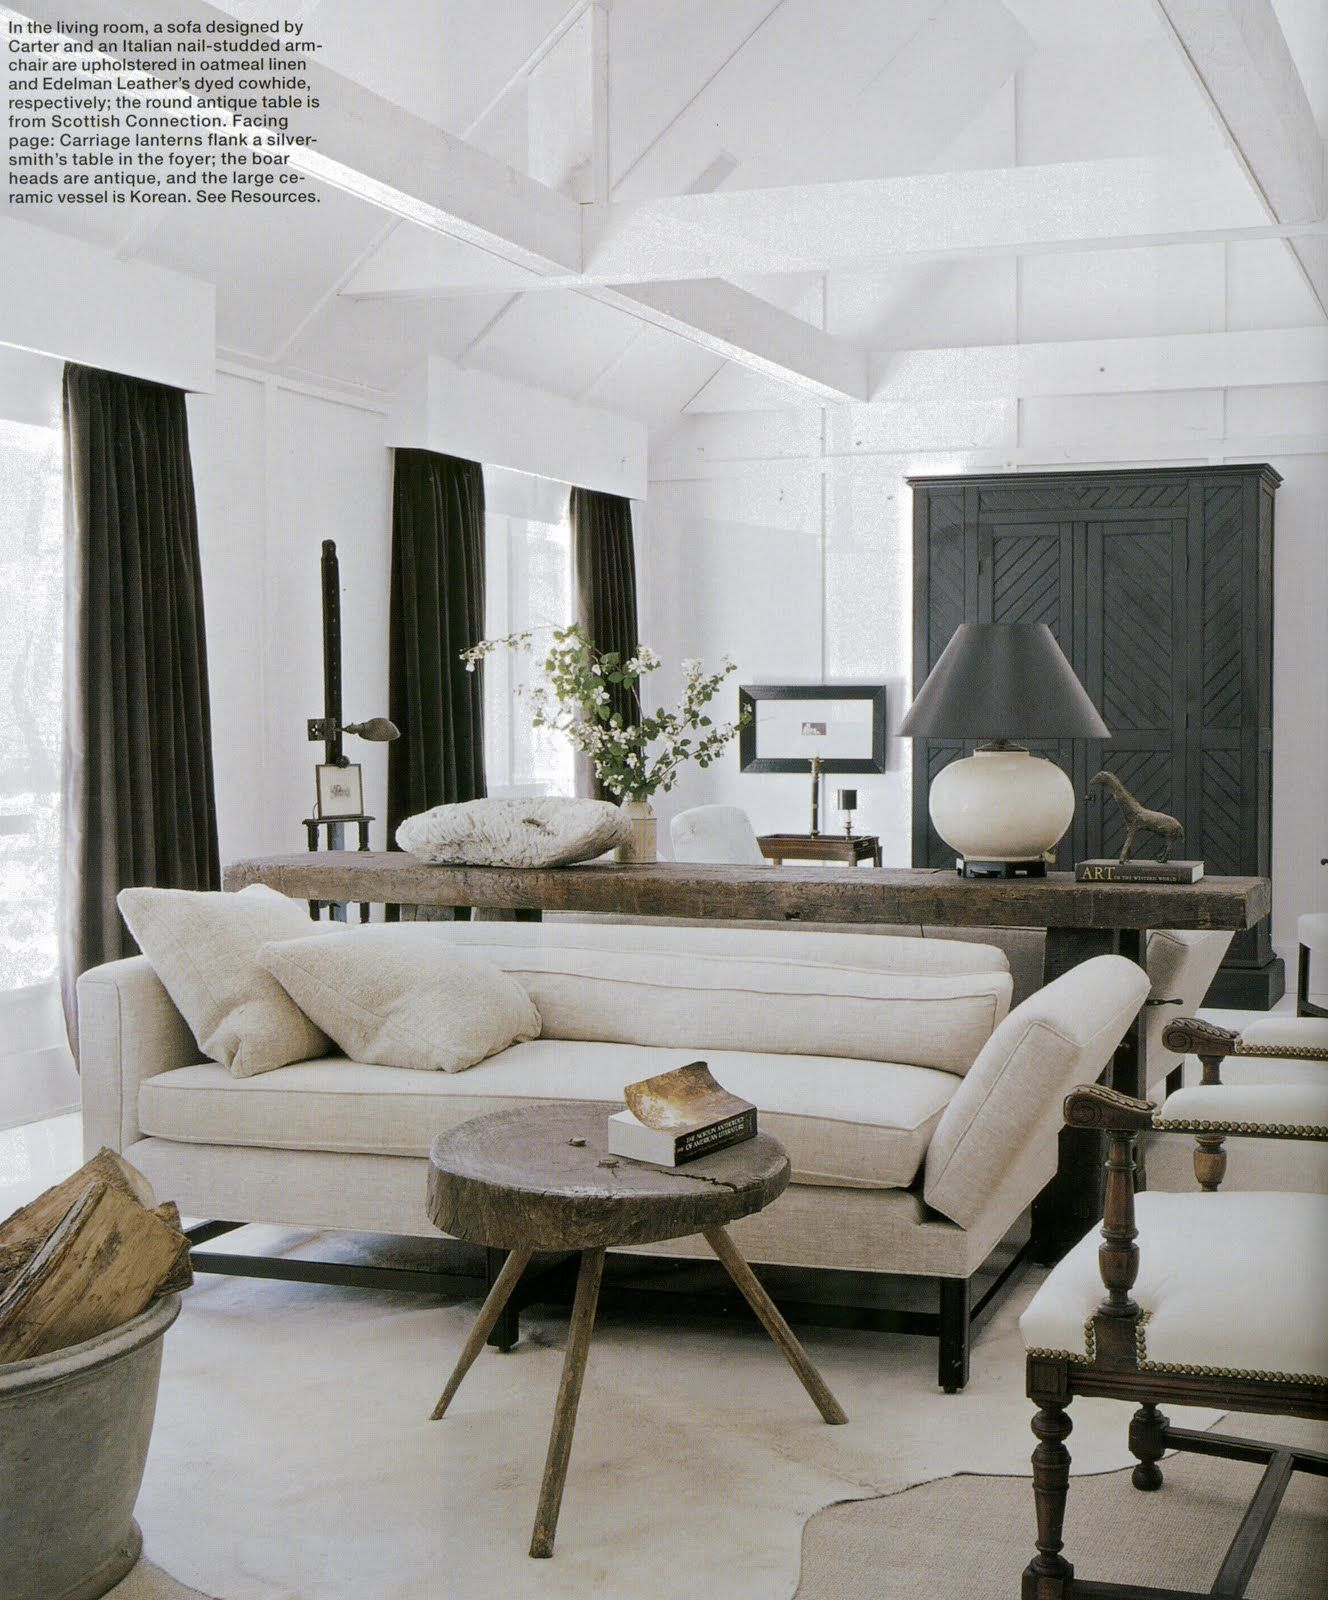 Well-Advised Design from Darryl Carter | Elle decor, Living rooms ...